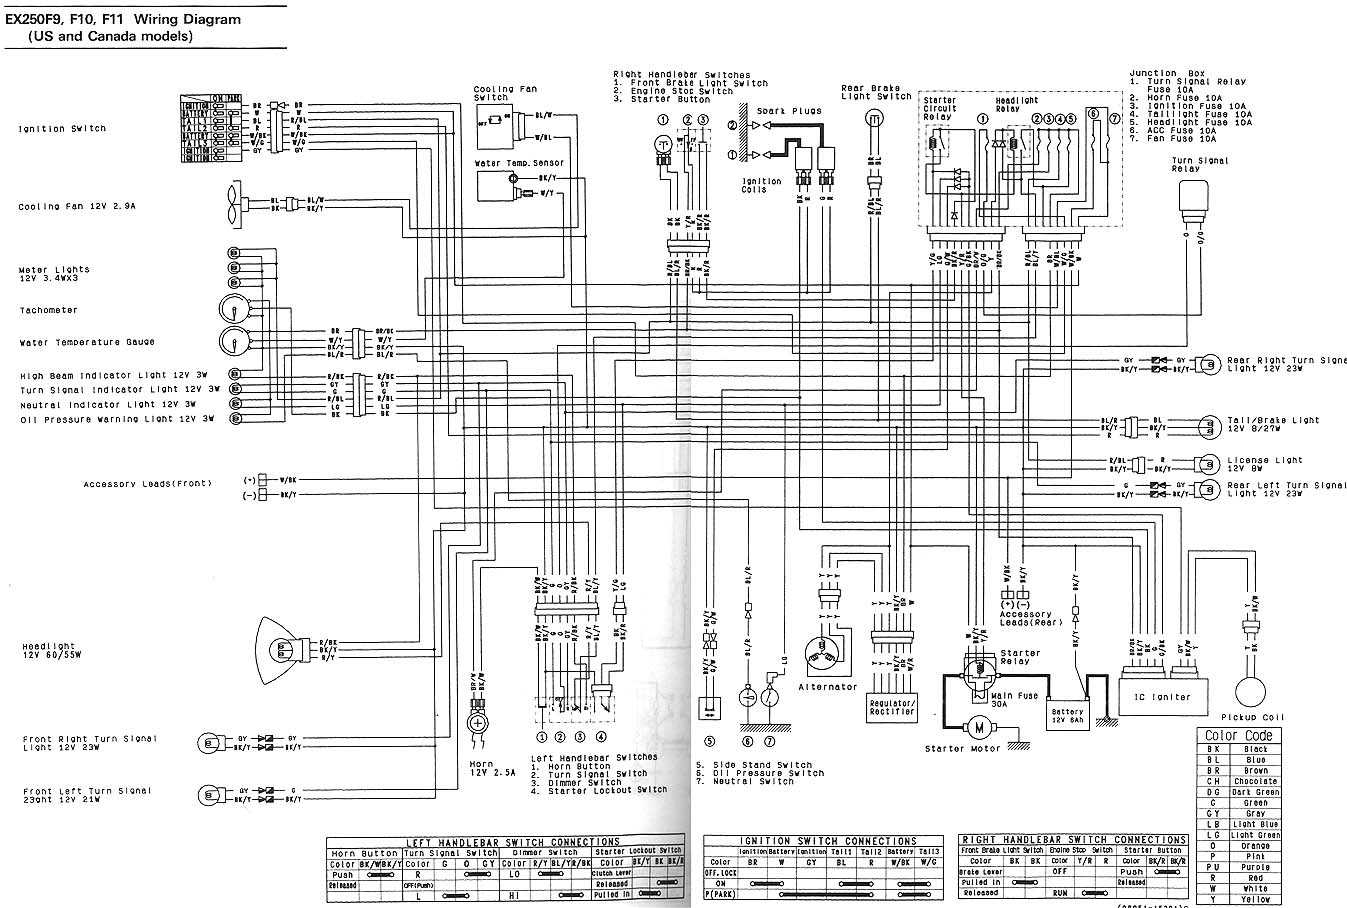 Kawasaki Ninja 250 Wiring Diagram Books Of Wiring Diagram \u2022 08  Kawasaki Ninja 250R Wiring-Diagram Ninja 250r Wiring Diagram